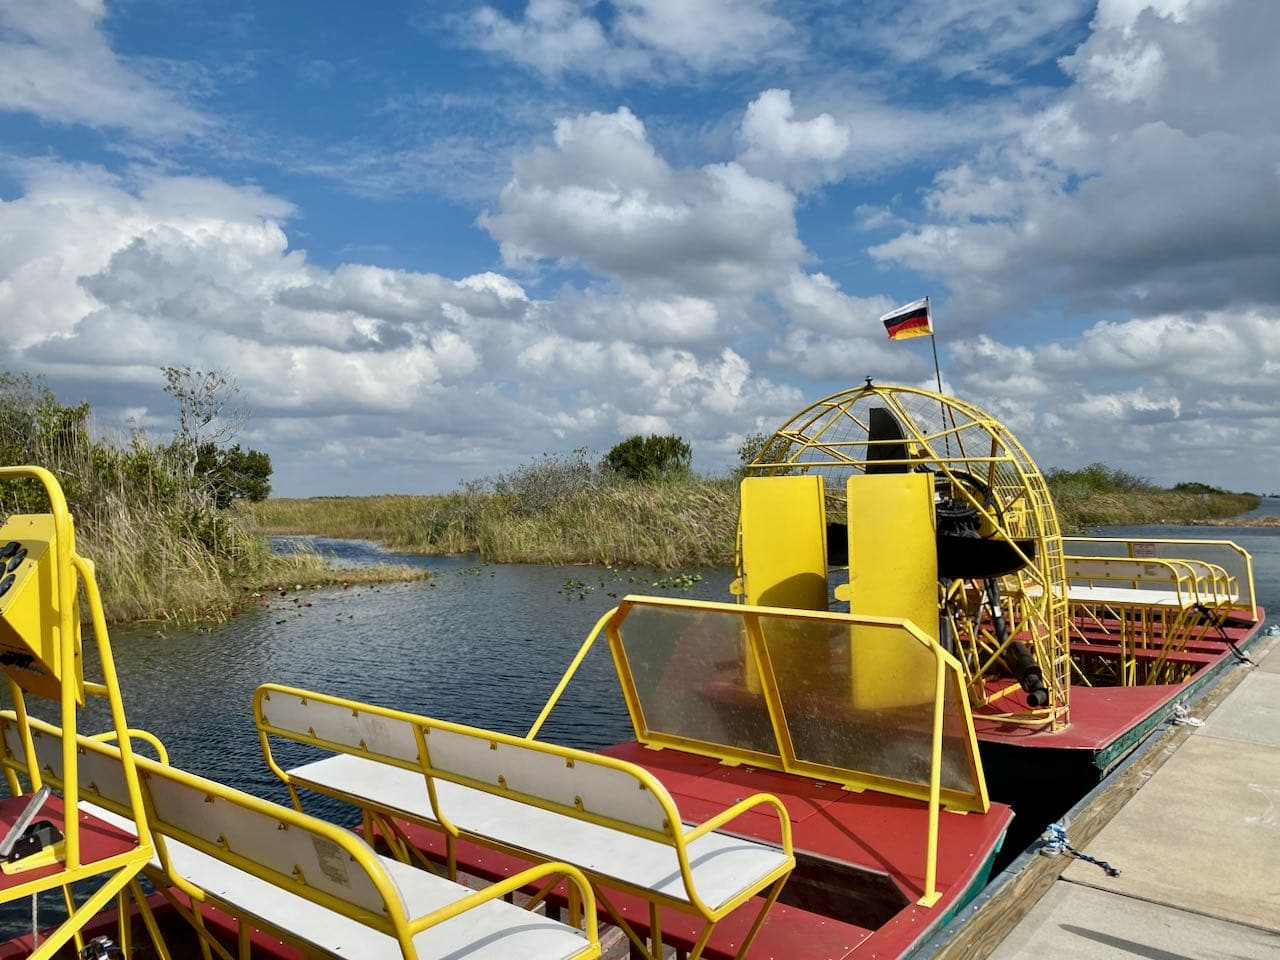 Miccosukee Airboat Tours 17 steder å stoppe langs Tamiami Trail/ U.S Highway 41